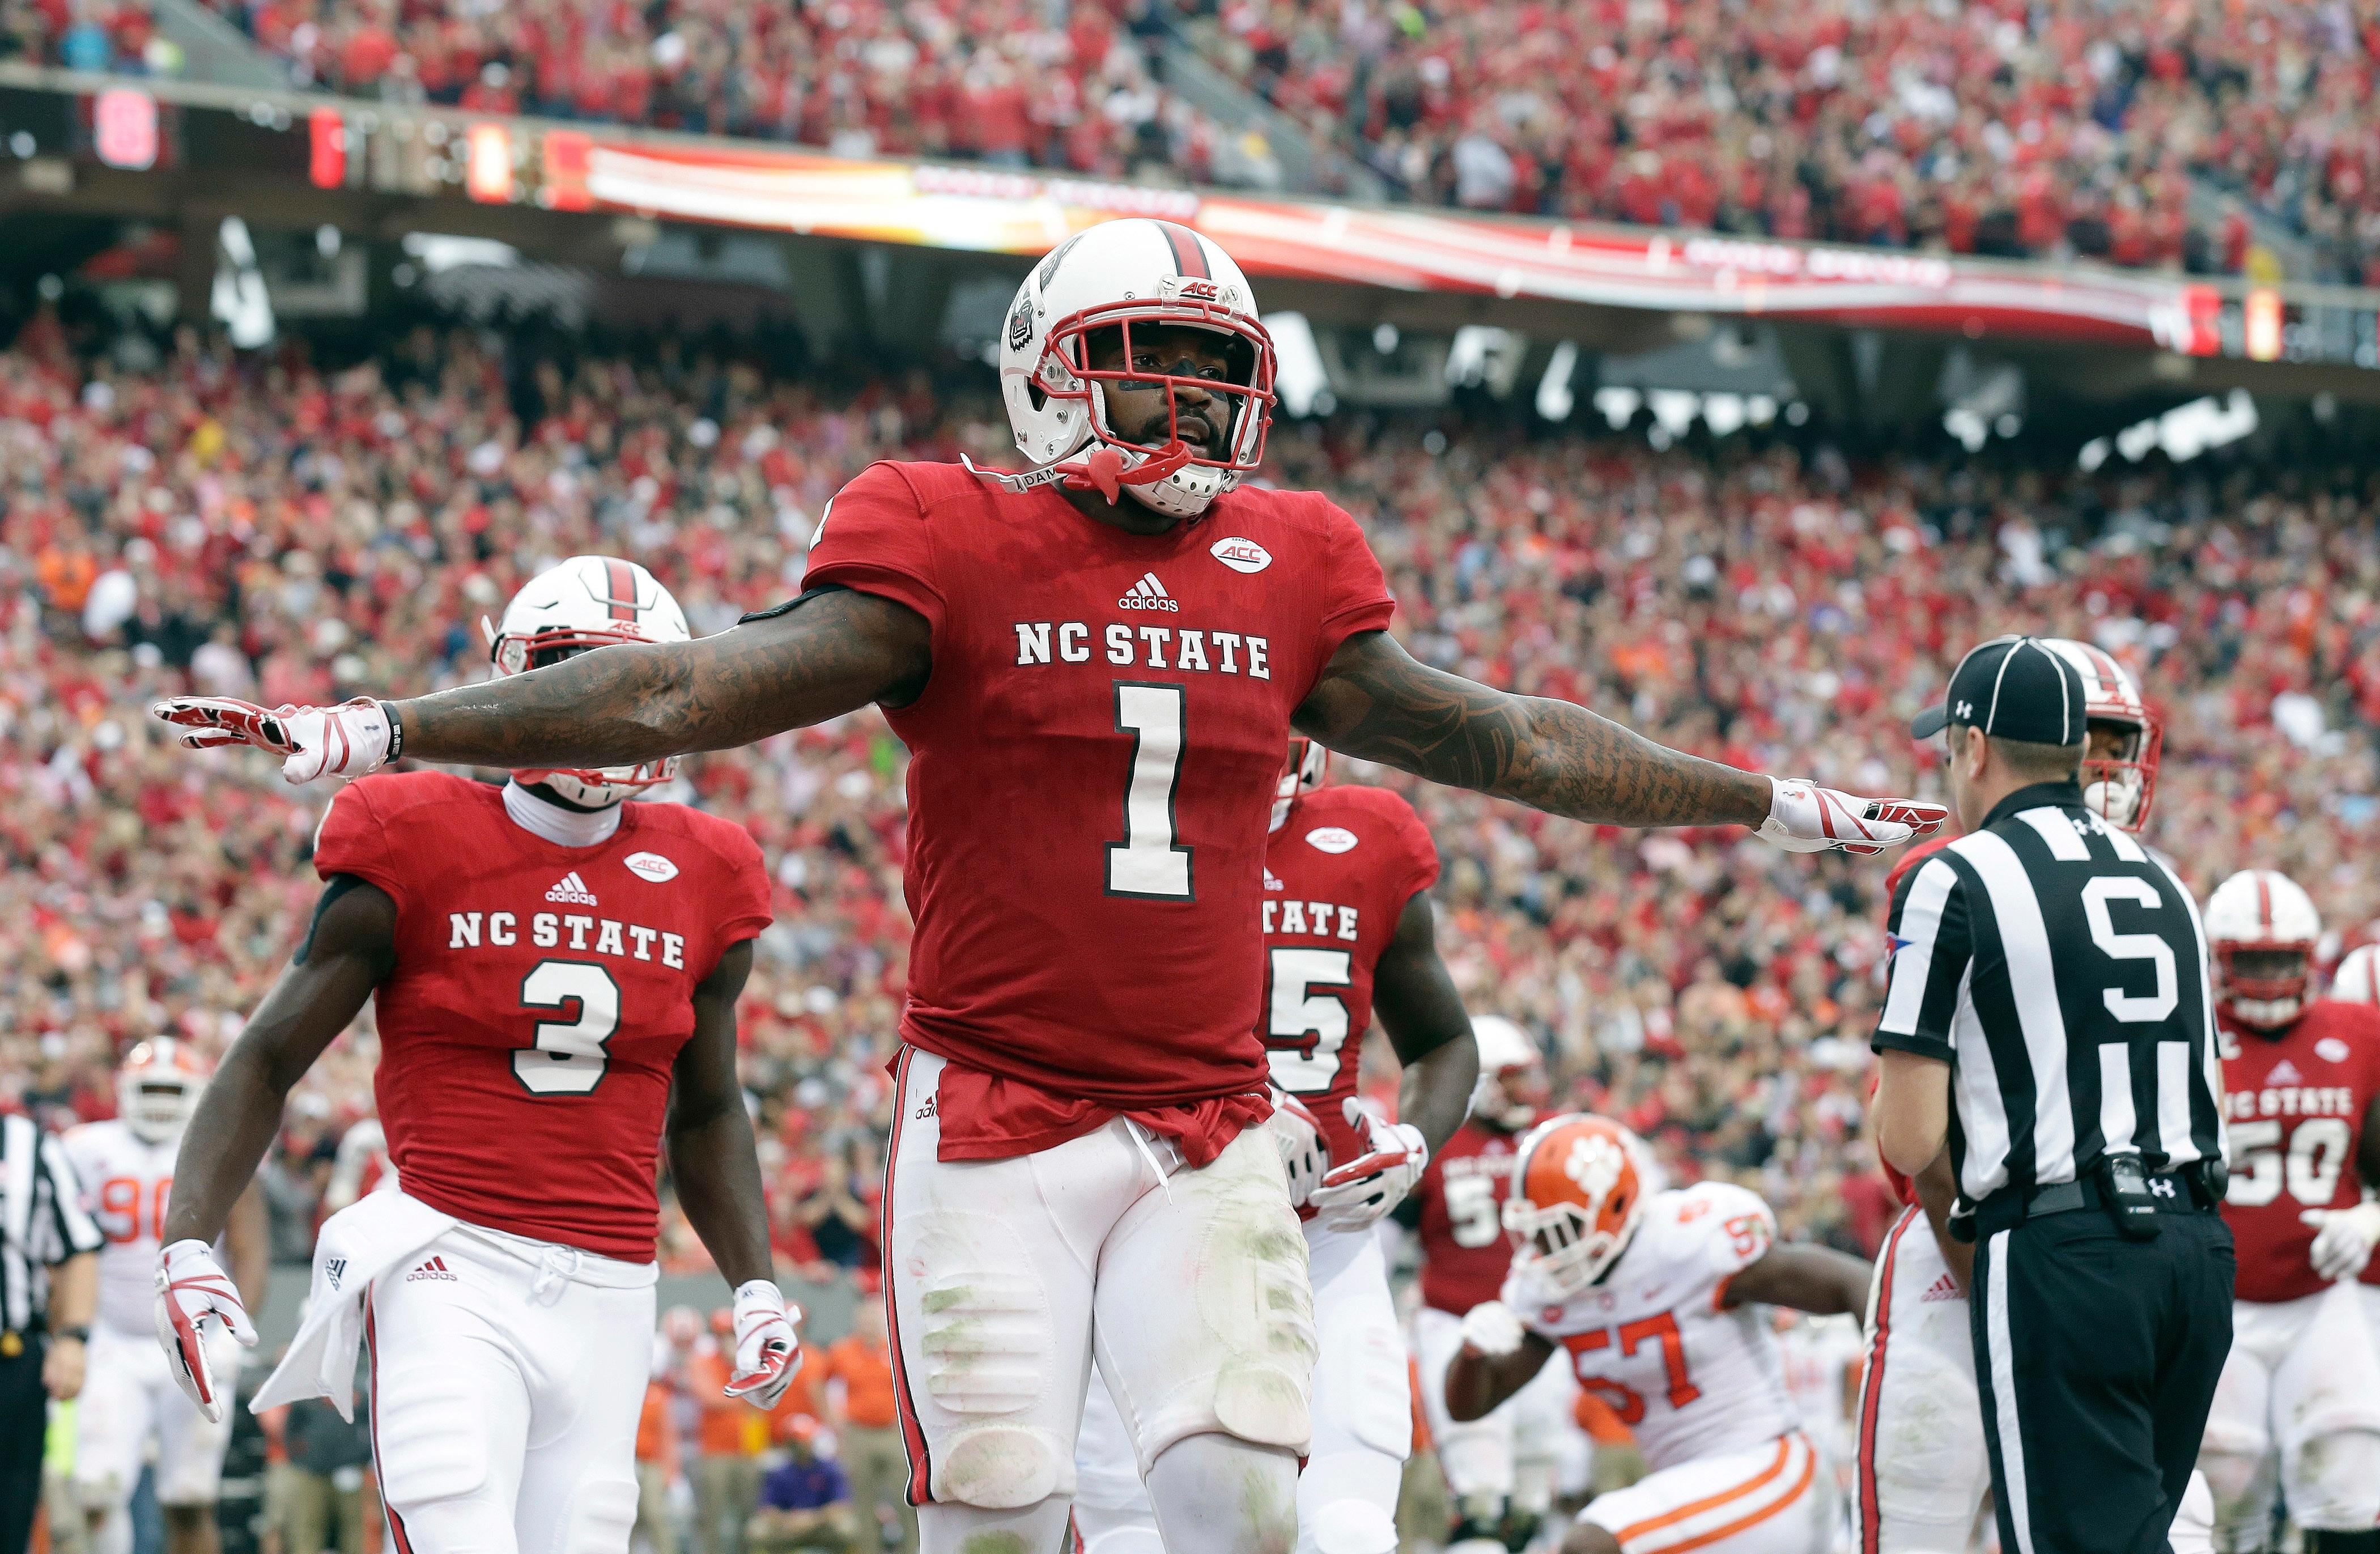 FILE - The Wolfpack (8-4) is seeking the second-most wins in school history, and trying to stay in the final College Football Playoff rankings. N.C. State was No. 24 going into bowl season.(AP Photo/Gerry Broome)